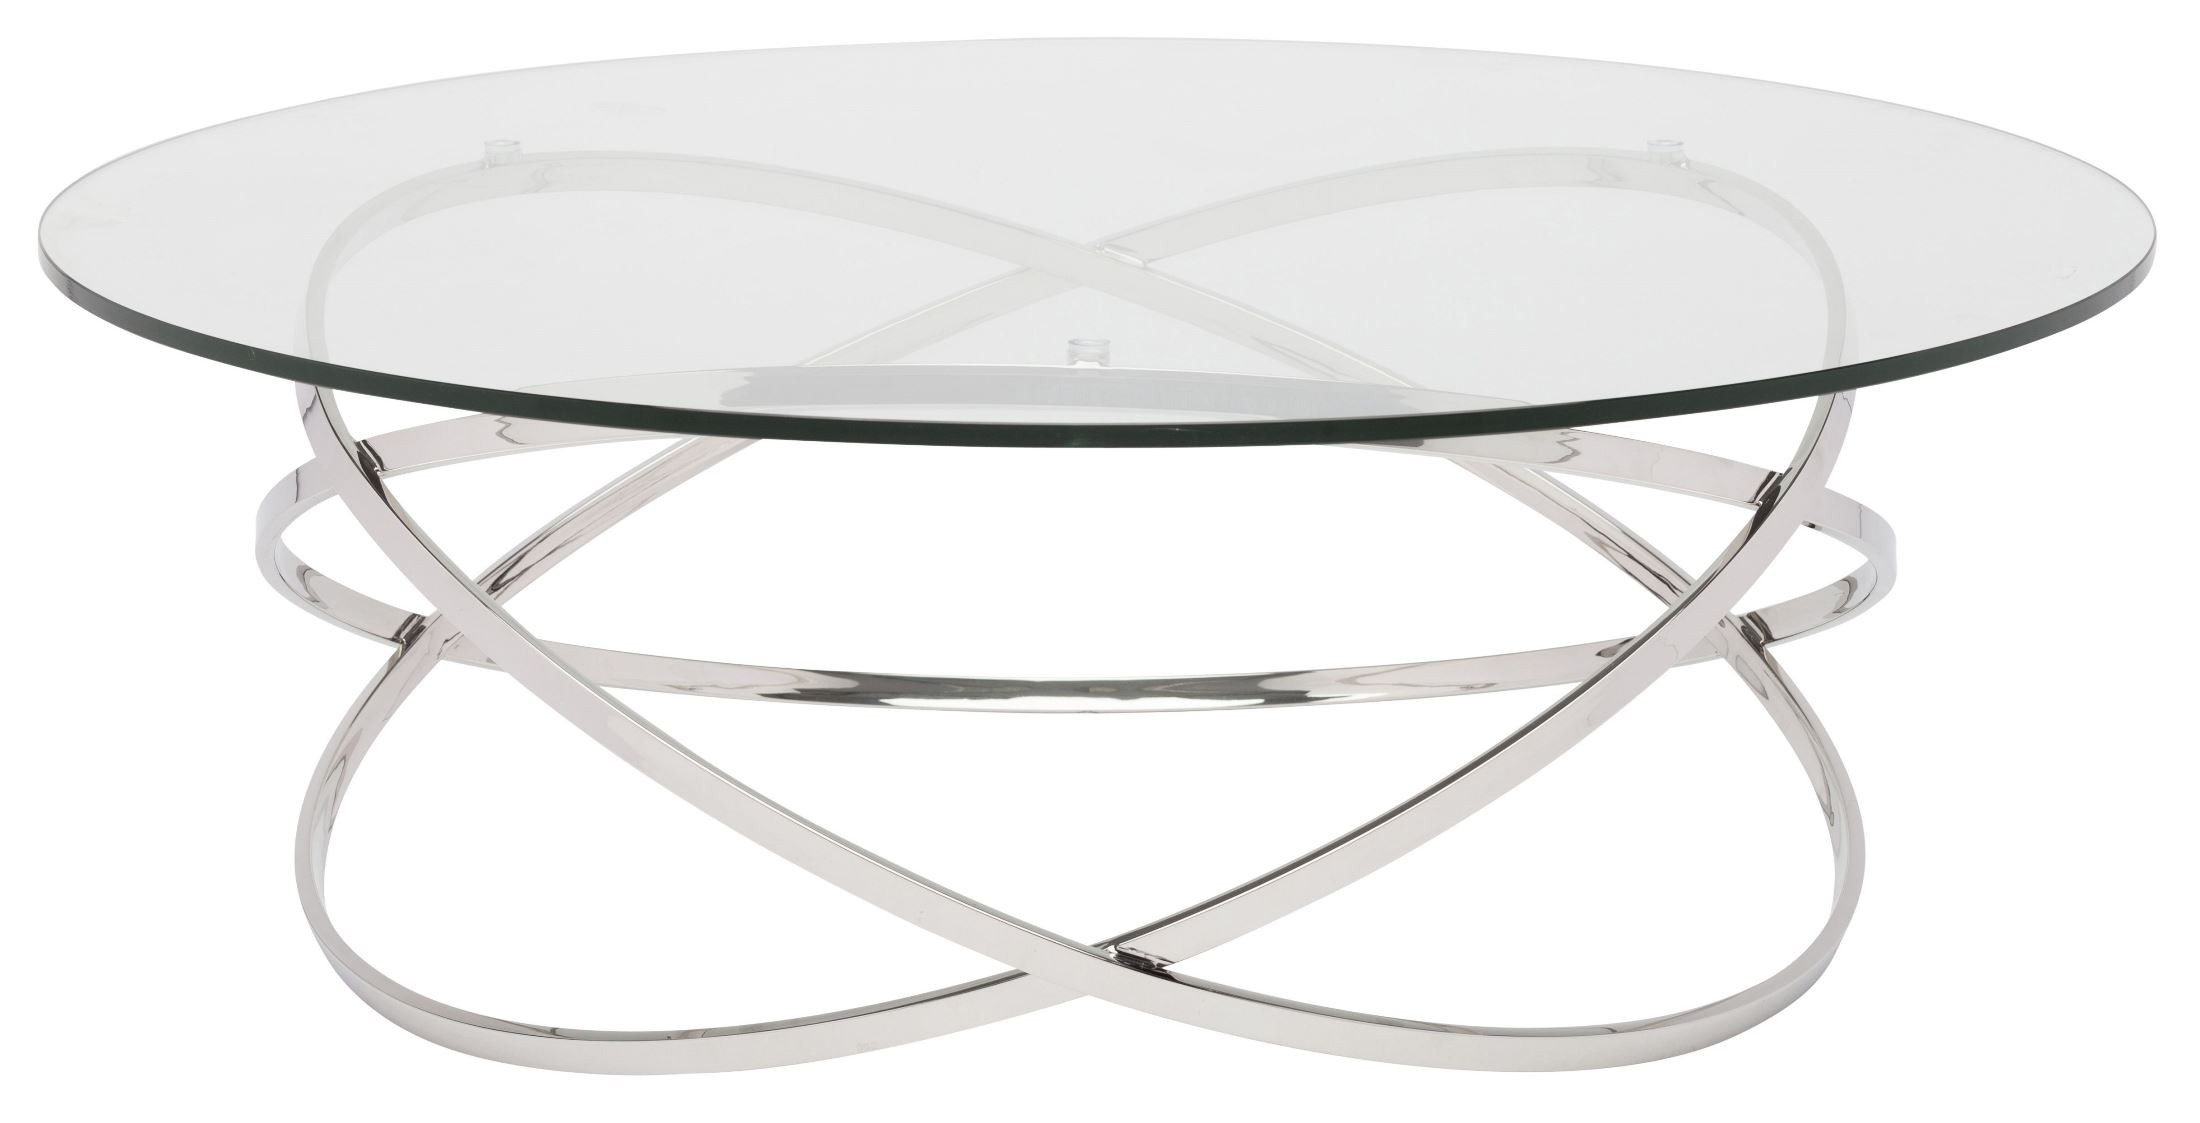 Corel Silver Clear Glass Coffee Table Hgtb405 Nuevo